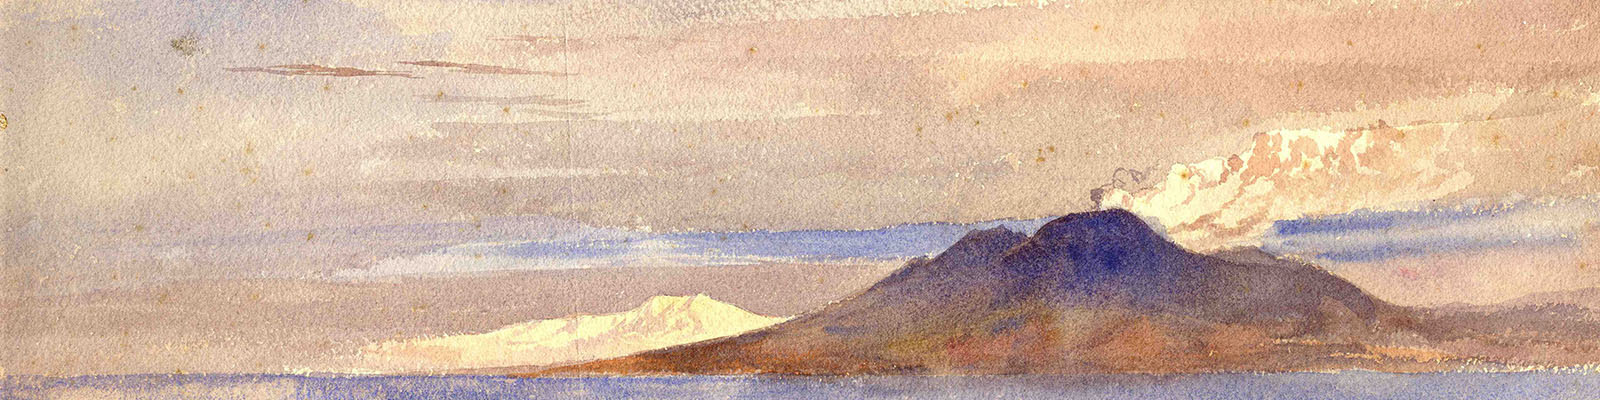 Arthur Severn, Vesuvius from the Sea